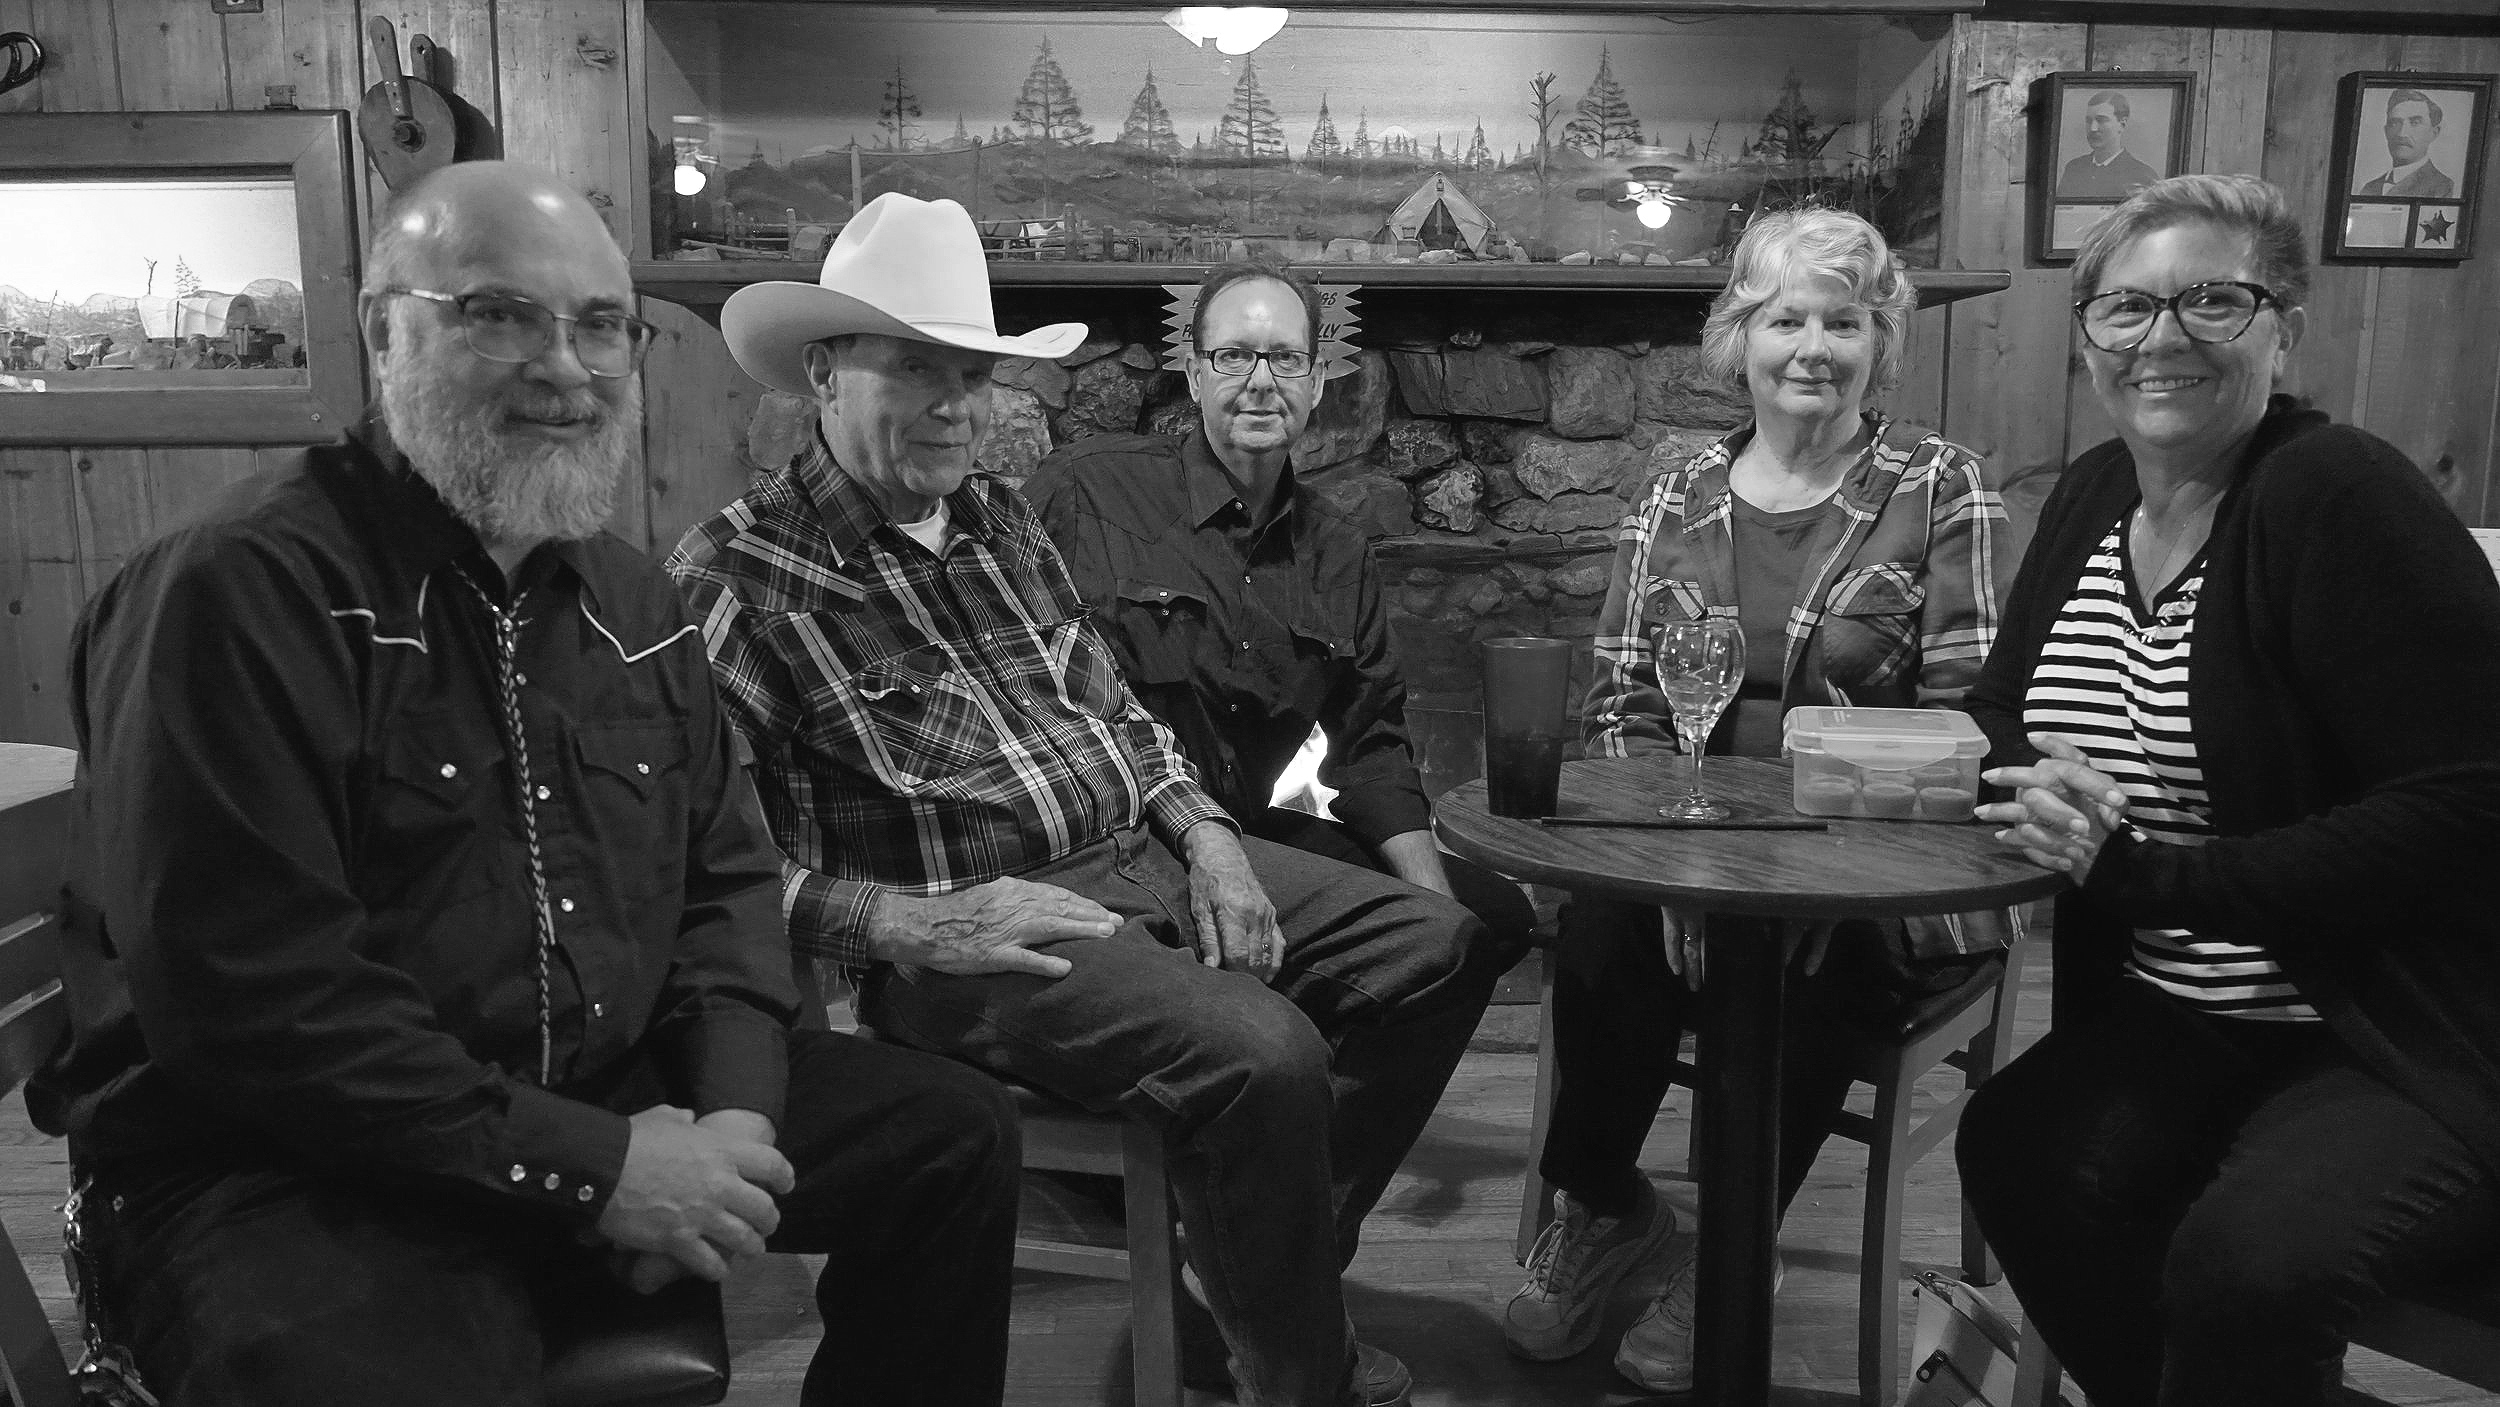 New owners James Thurin (left) Paul Frankforter (middle) and Darlyn Thurin (right) sitting with previous owners John and Rebecca Saltzgaver.